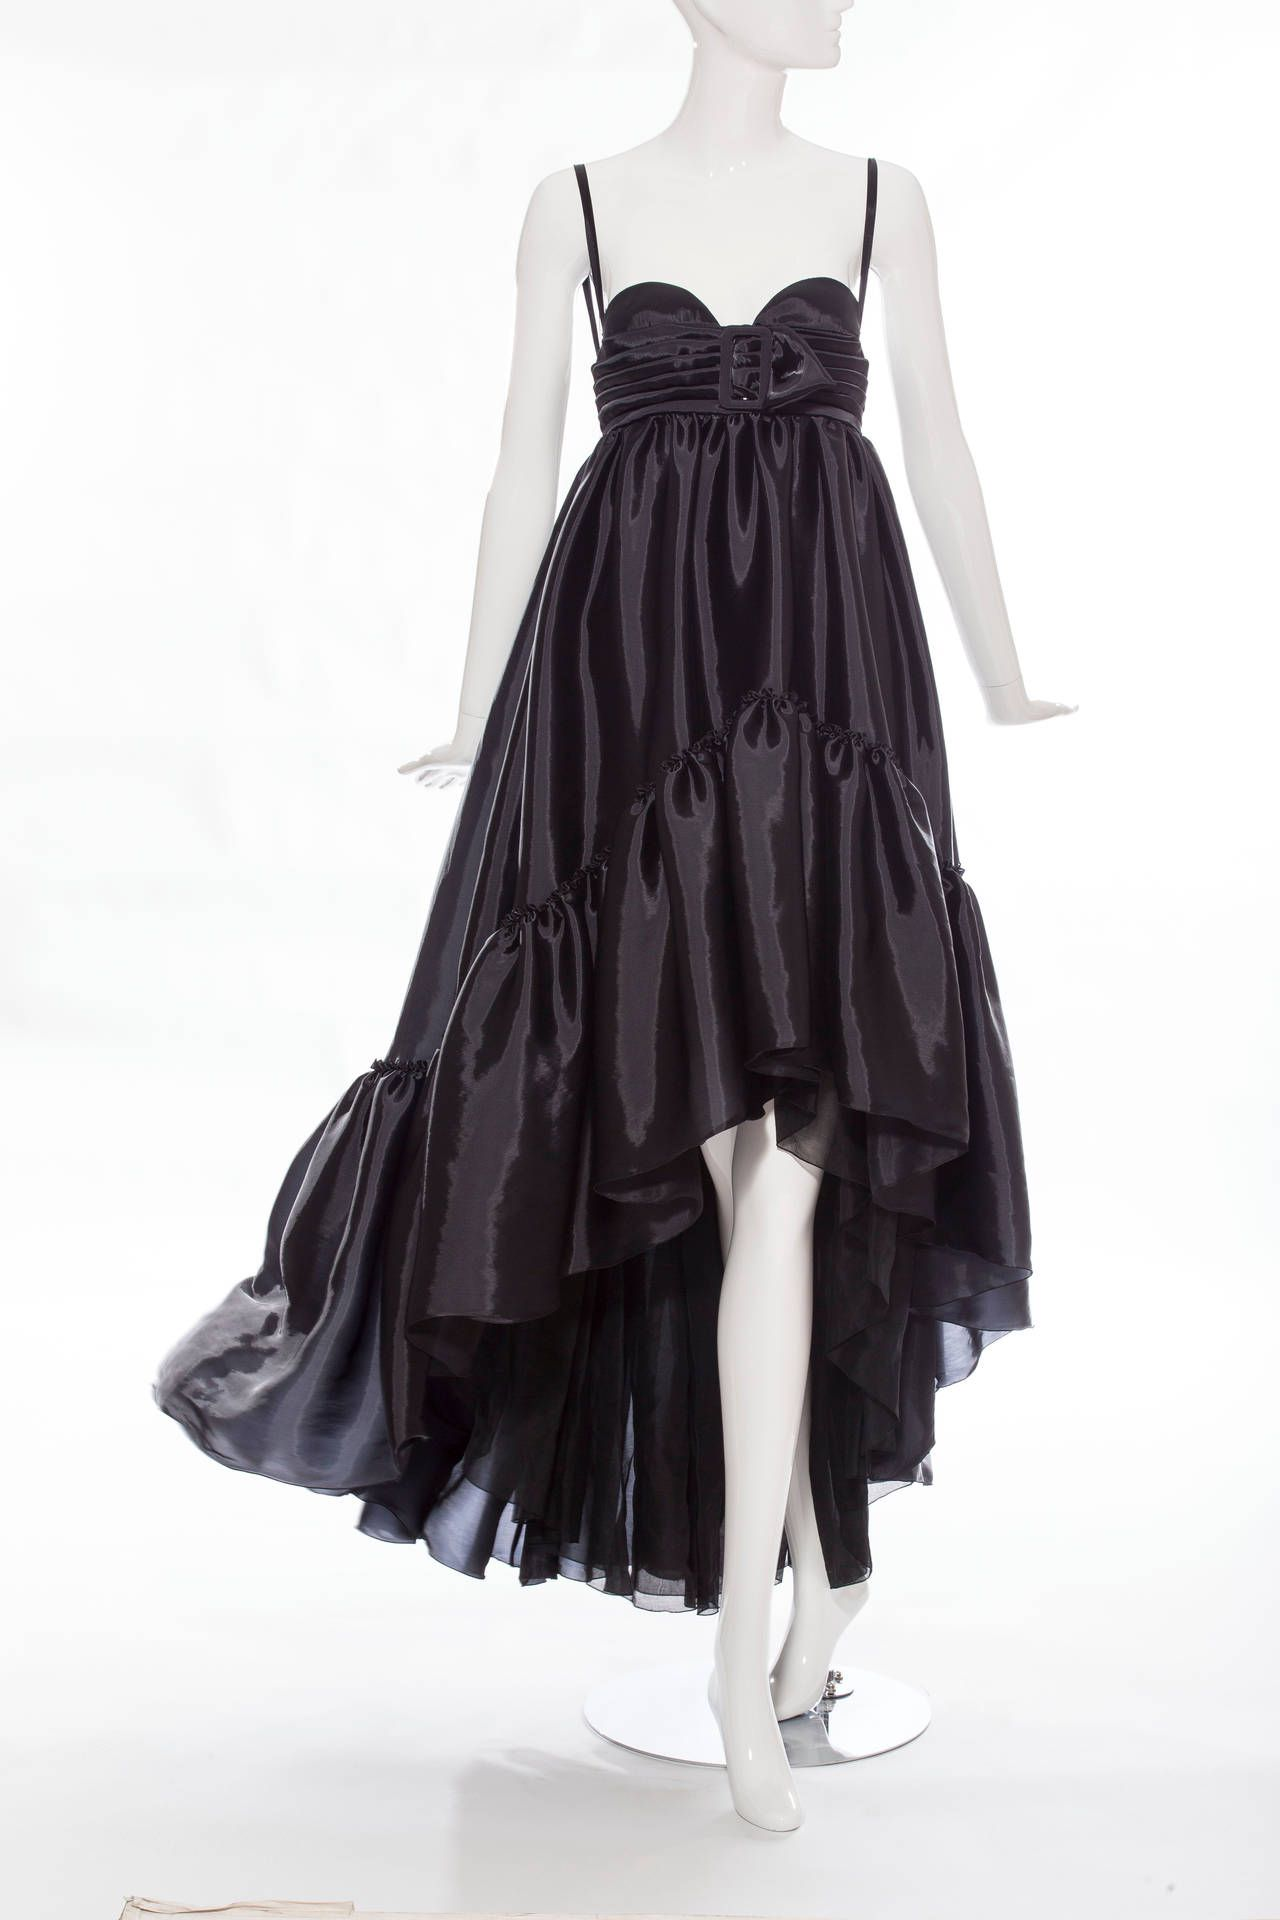 Jean Paul Gaultier Circa 1990s | From a collection of rare vintage evening dresses at https://www.1stdibs.com/fashion/clothing/evening-dresses/